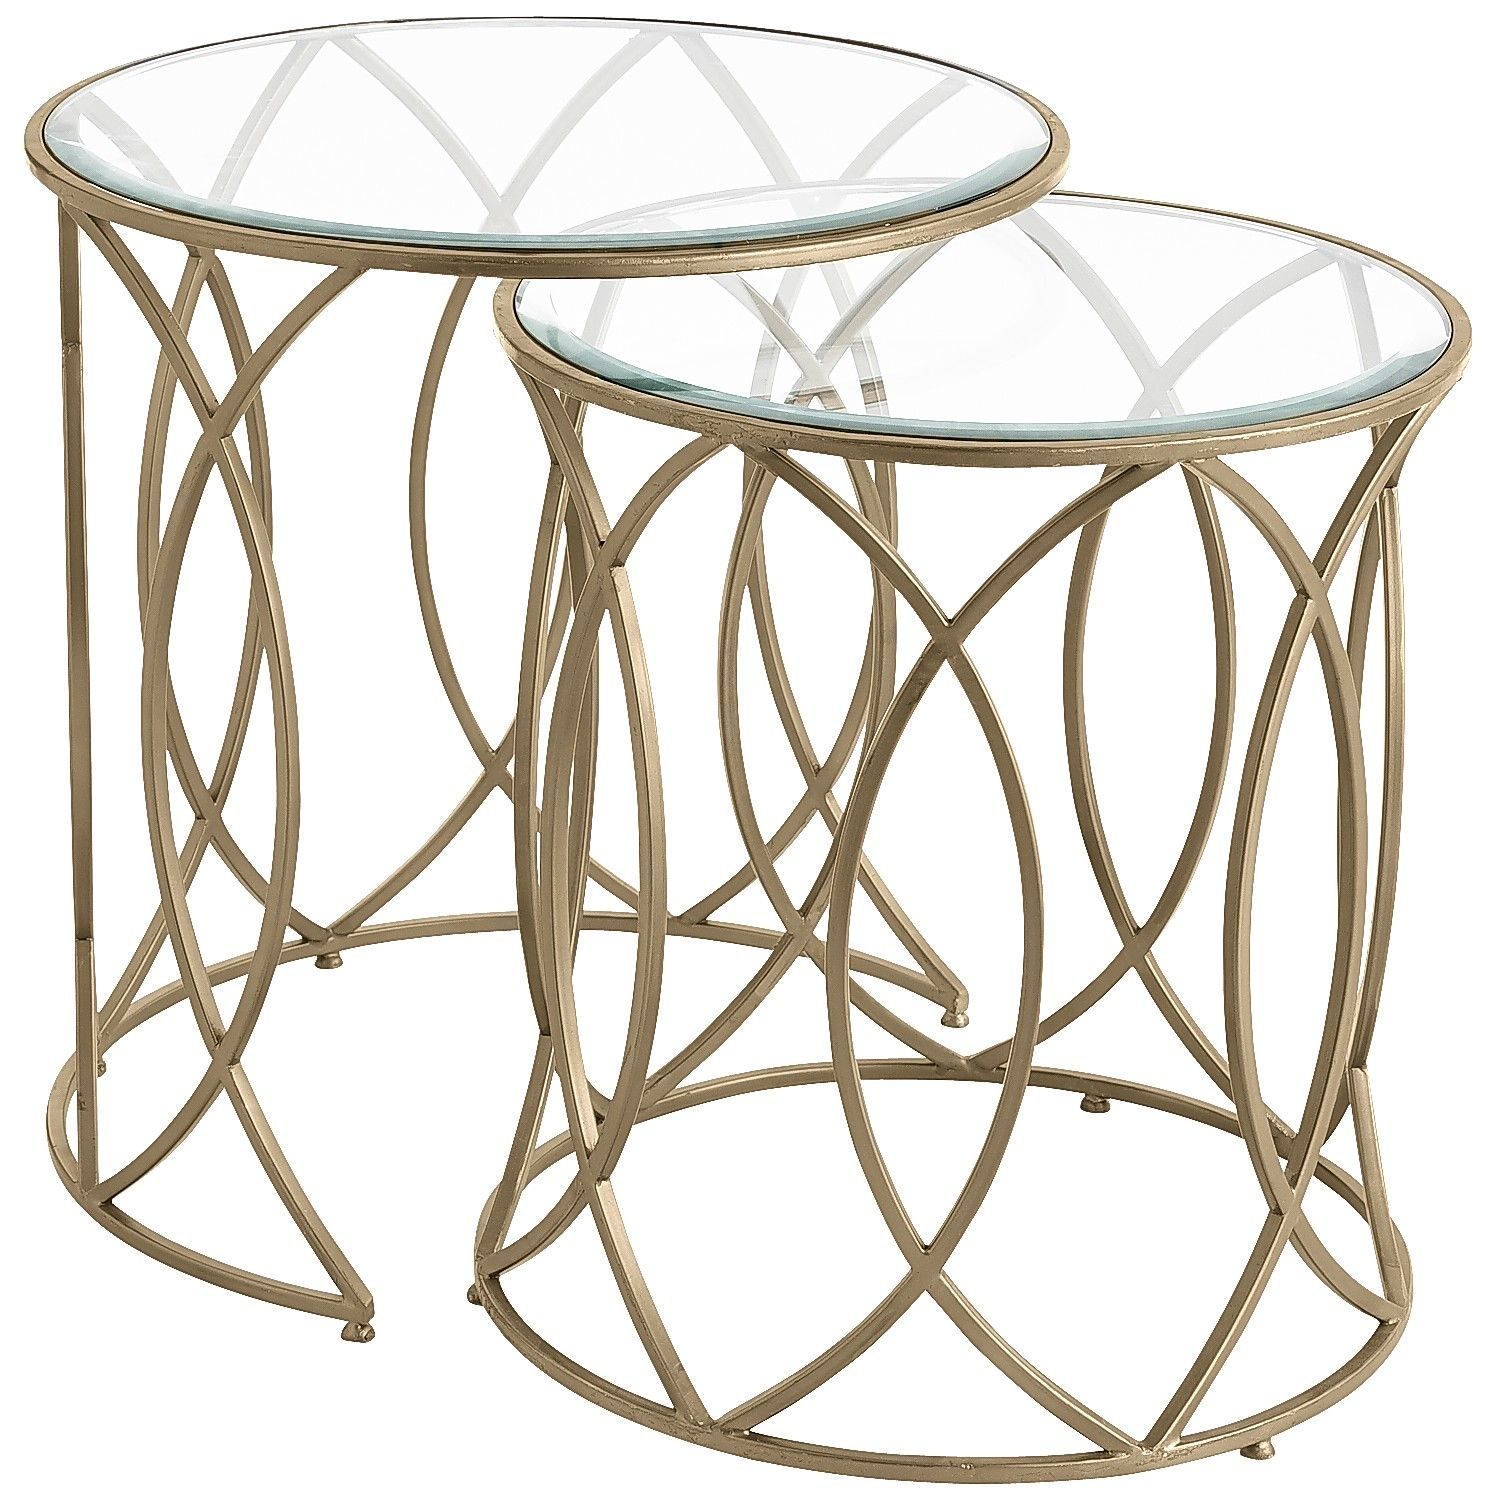 Iron Side Tables For Living Room Elana Bronze Iron Round Nesting Tables Bl Home Nesting